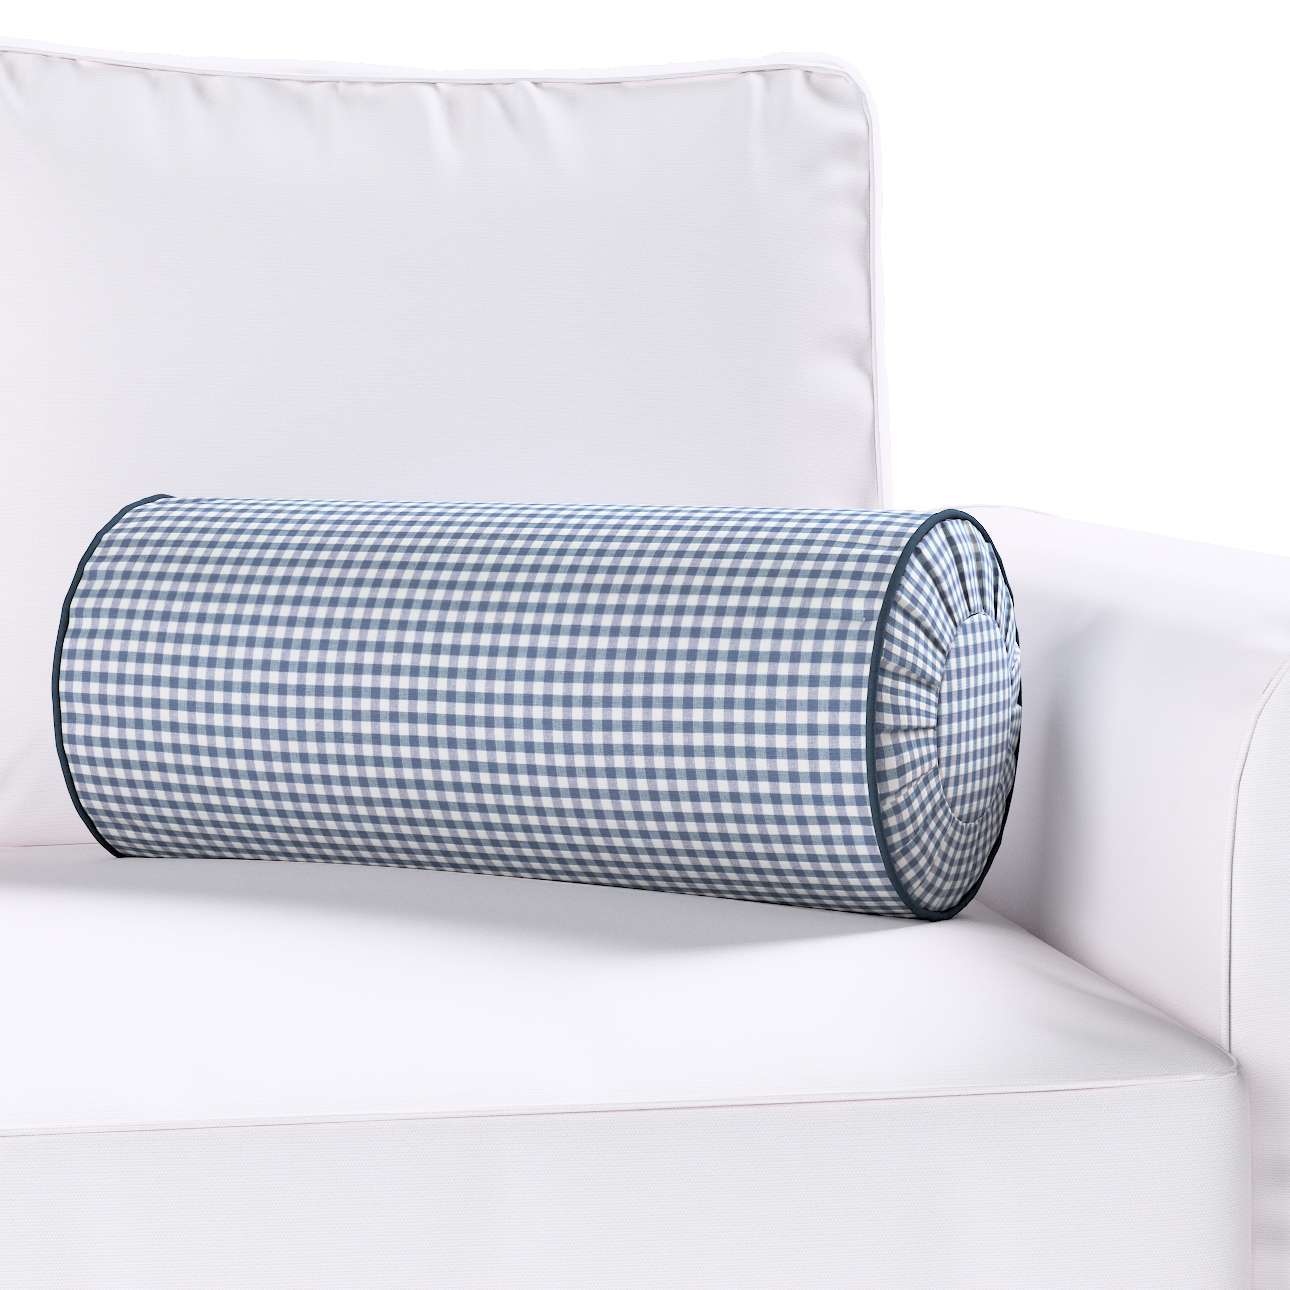 Bolster cushion with pleats in collection Quadro, fabric: 136-00